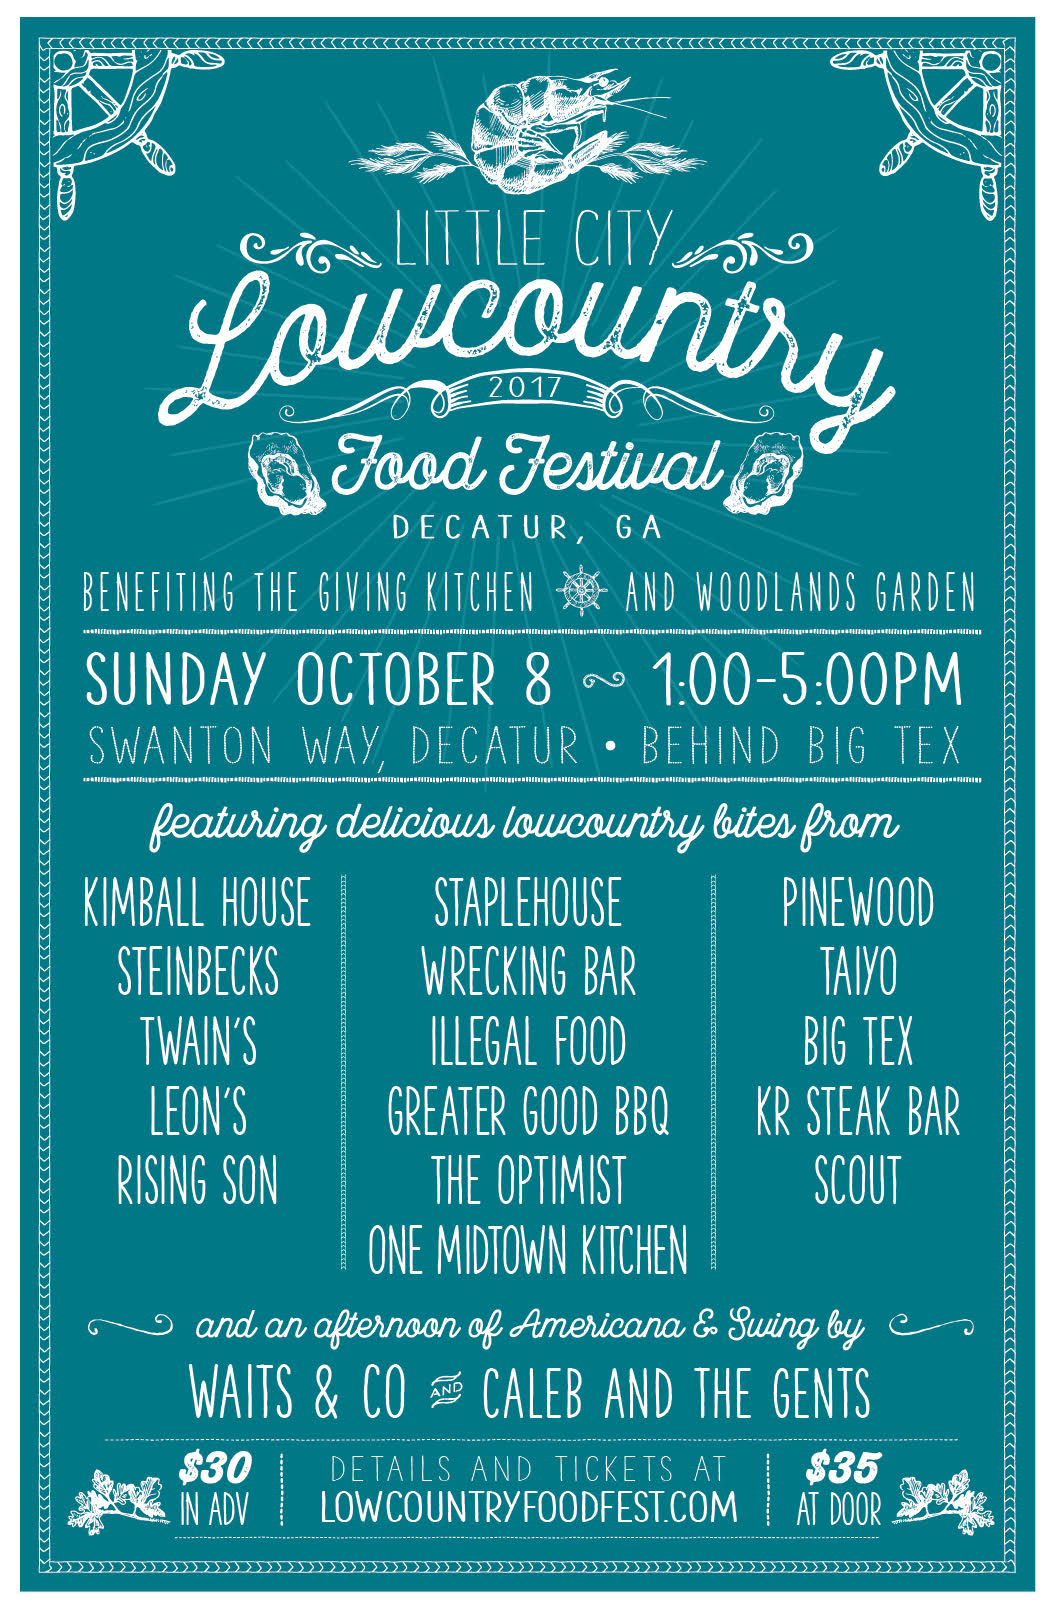 Little City Lowcountry Food Fest